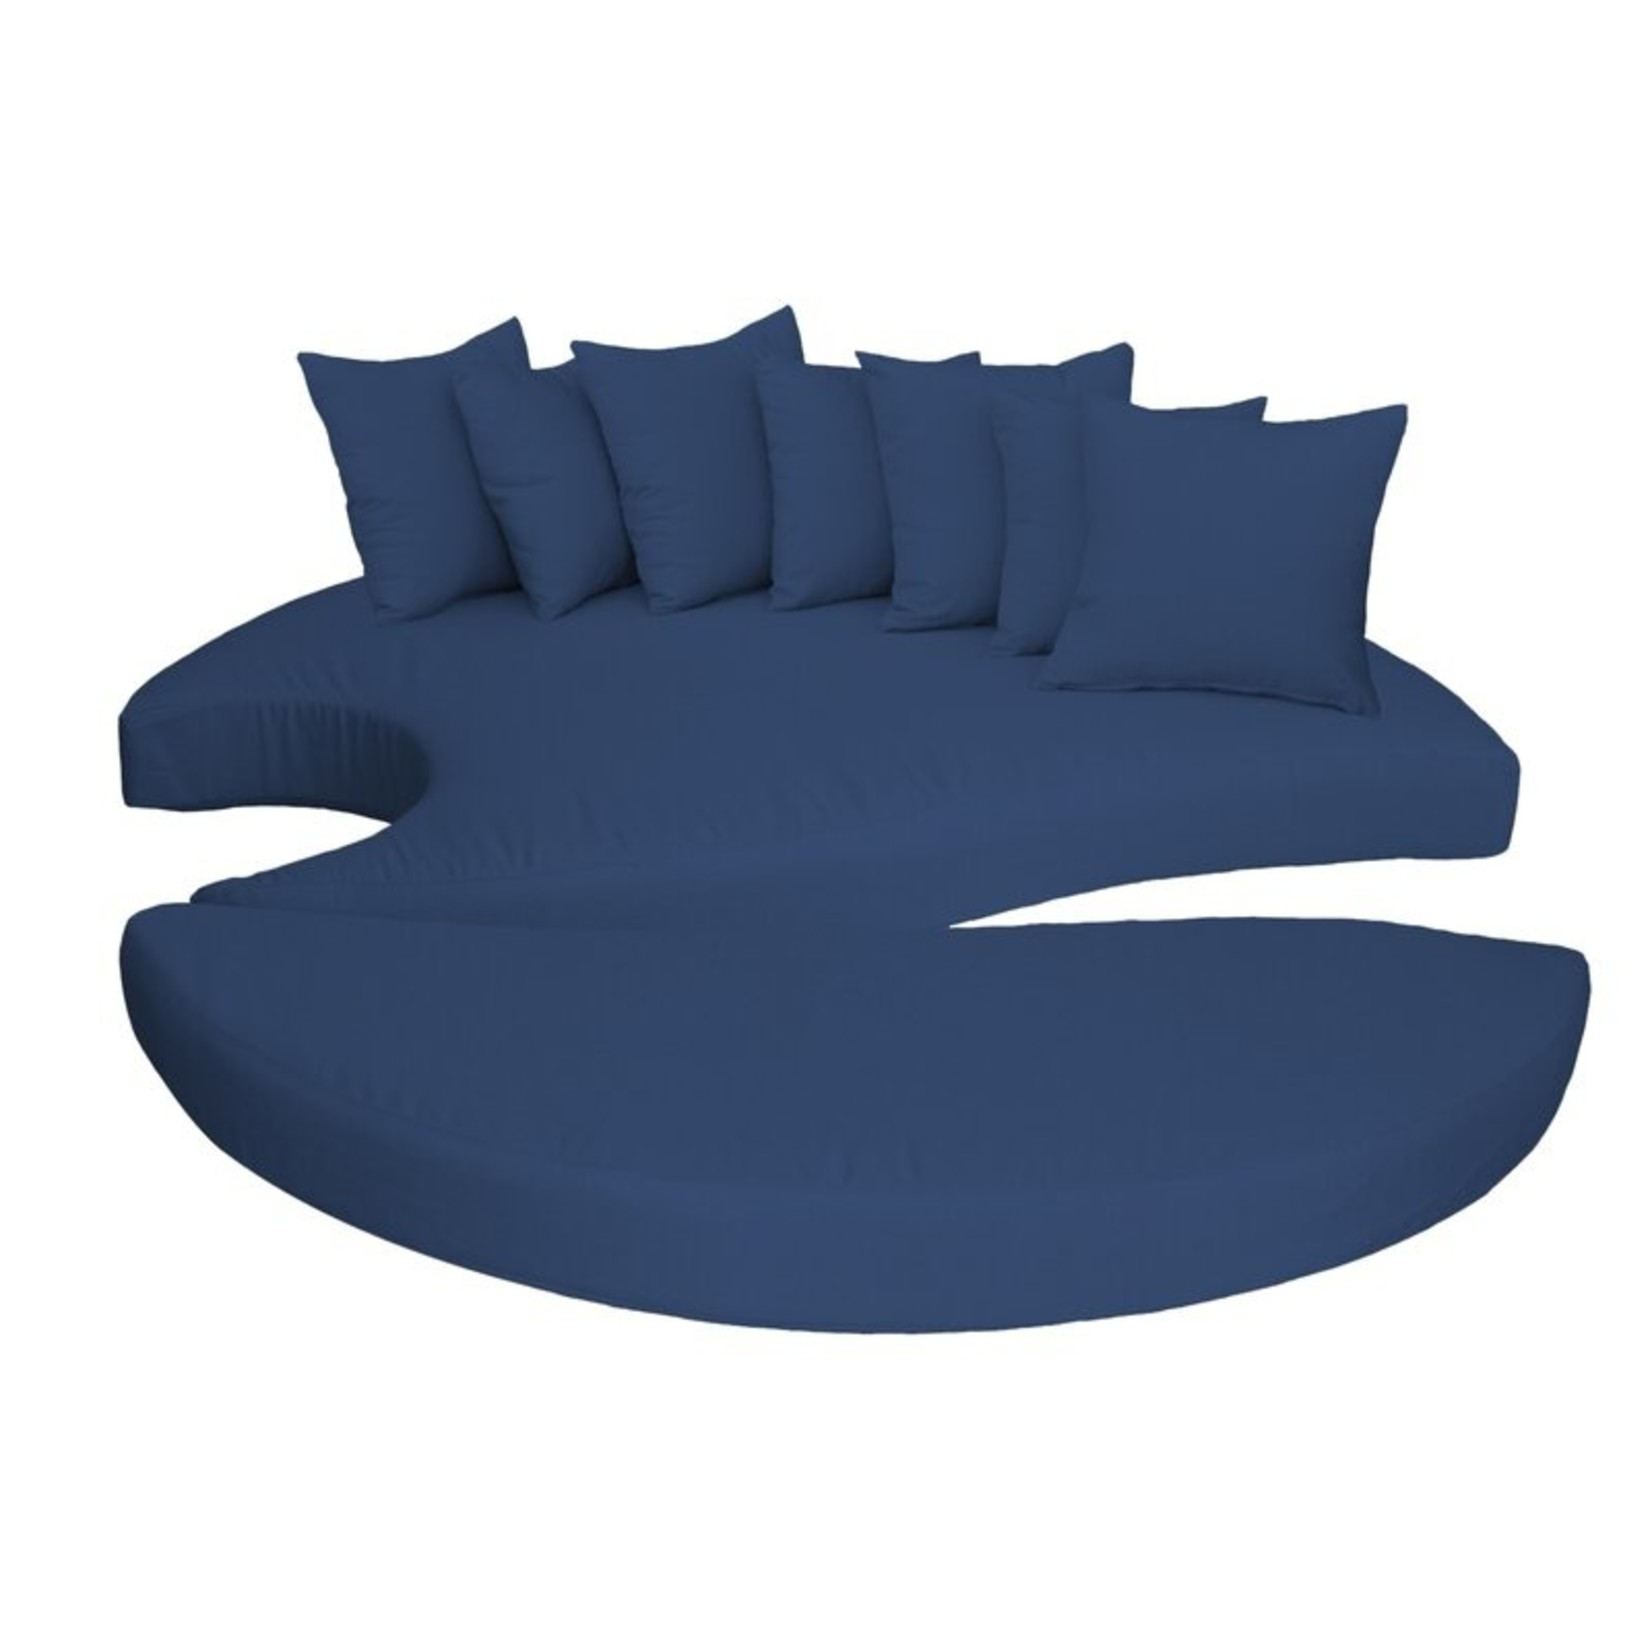 *9 Piece Billye Indoor/Outdoor Cushion Covers - Navy - Covers Only - Final Sale